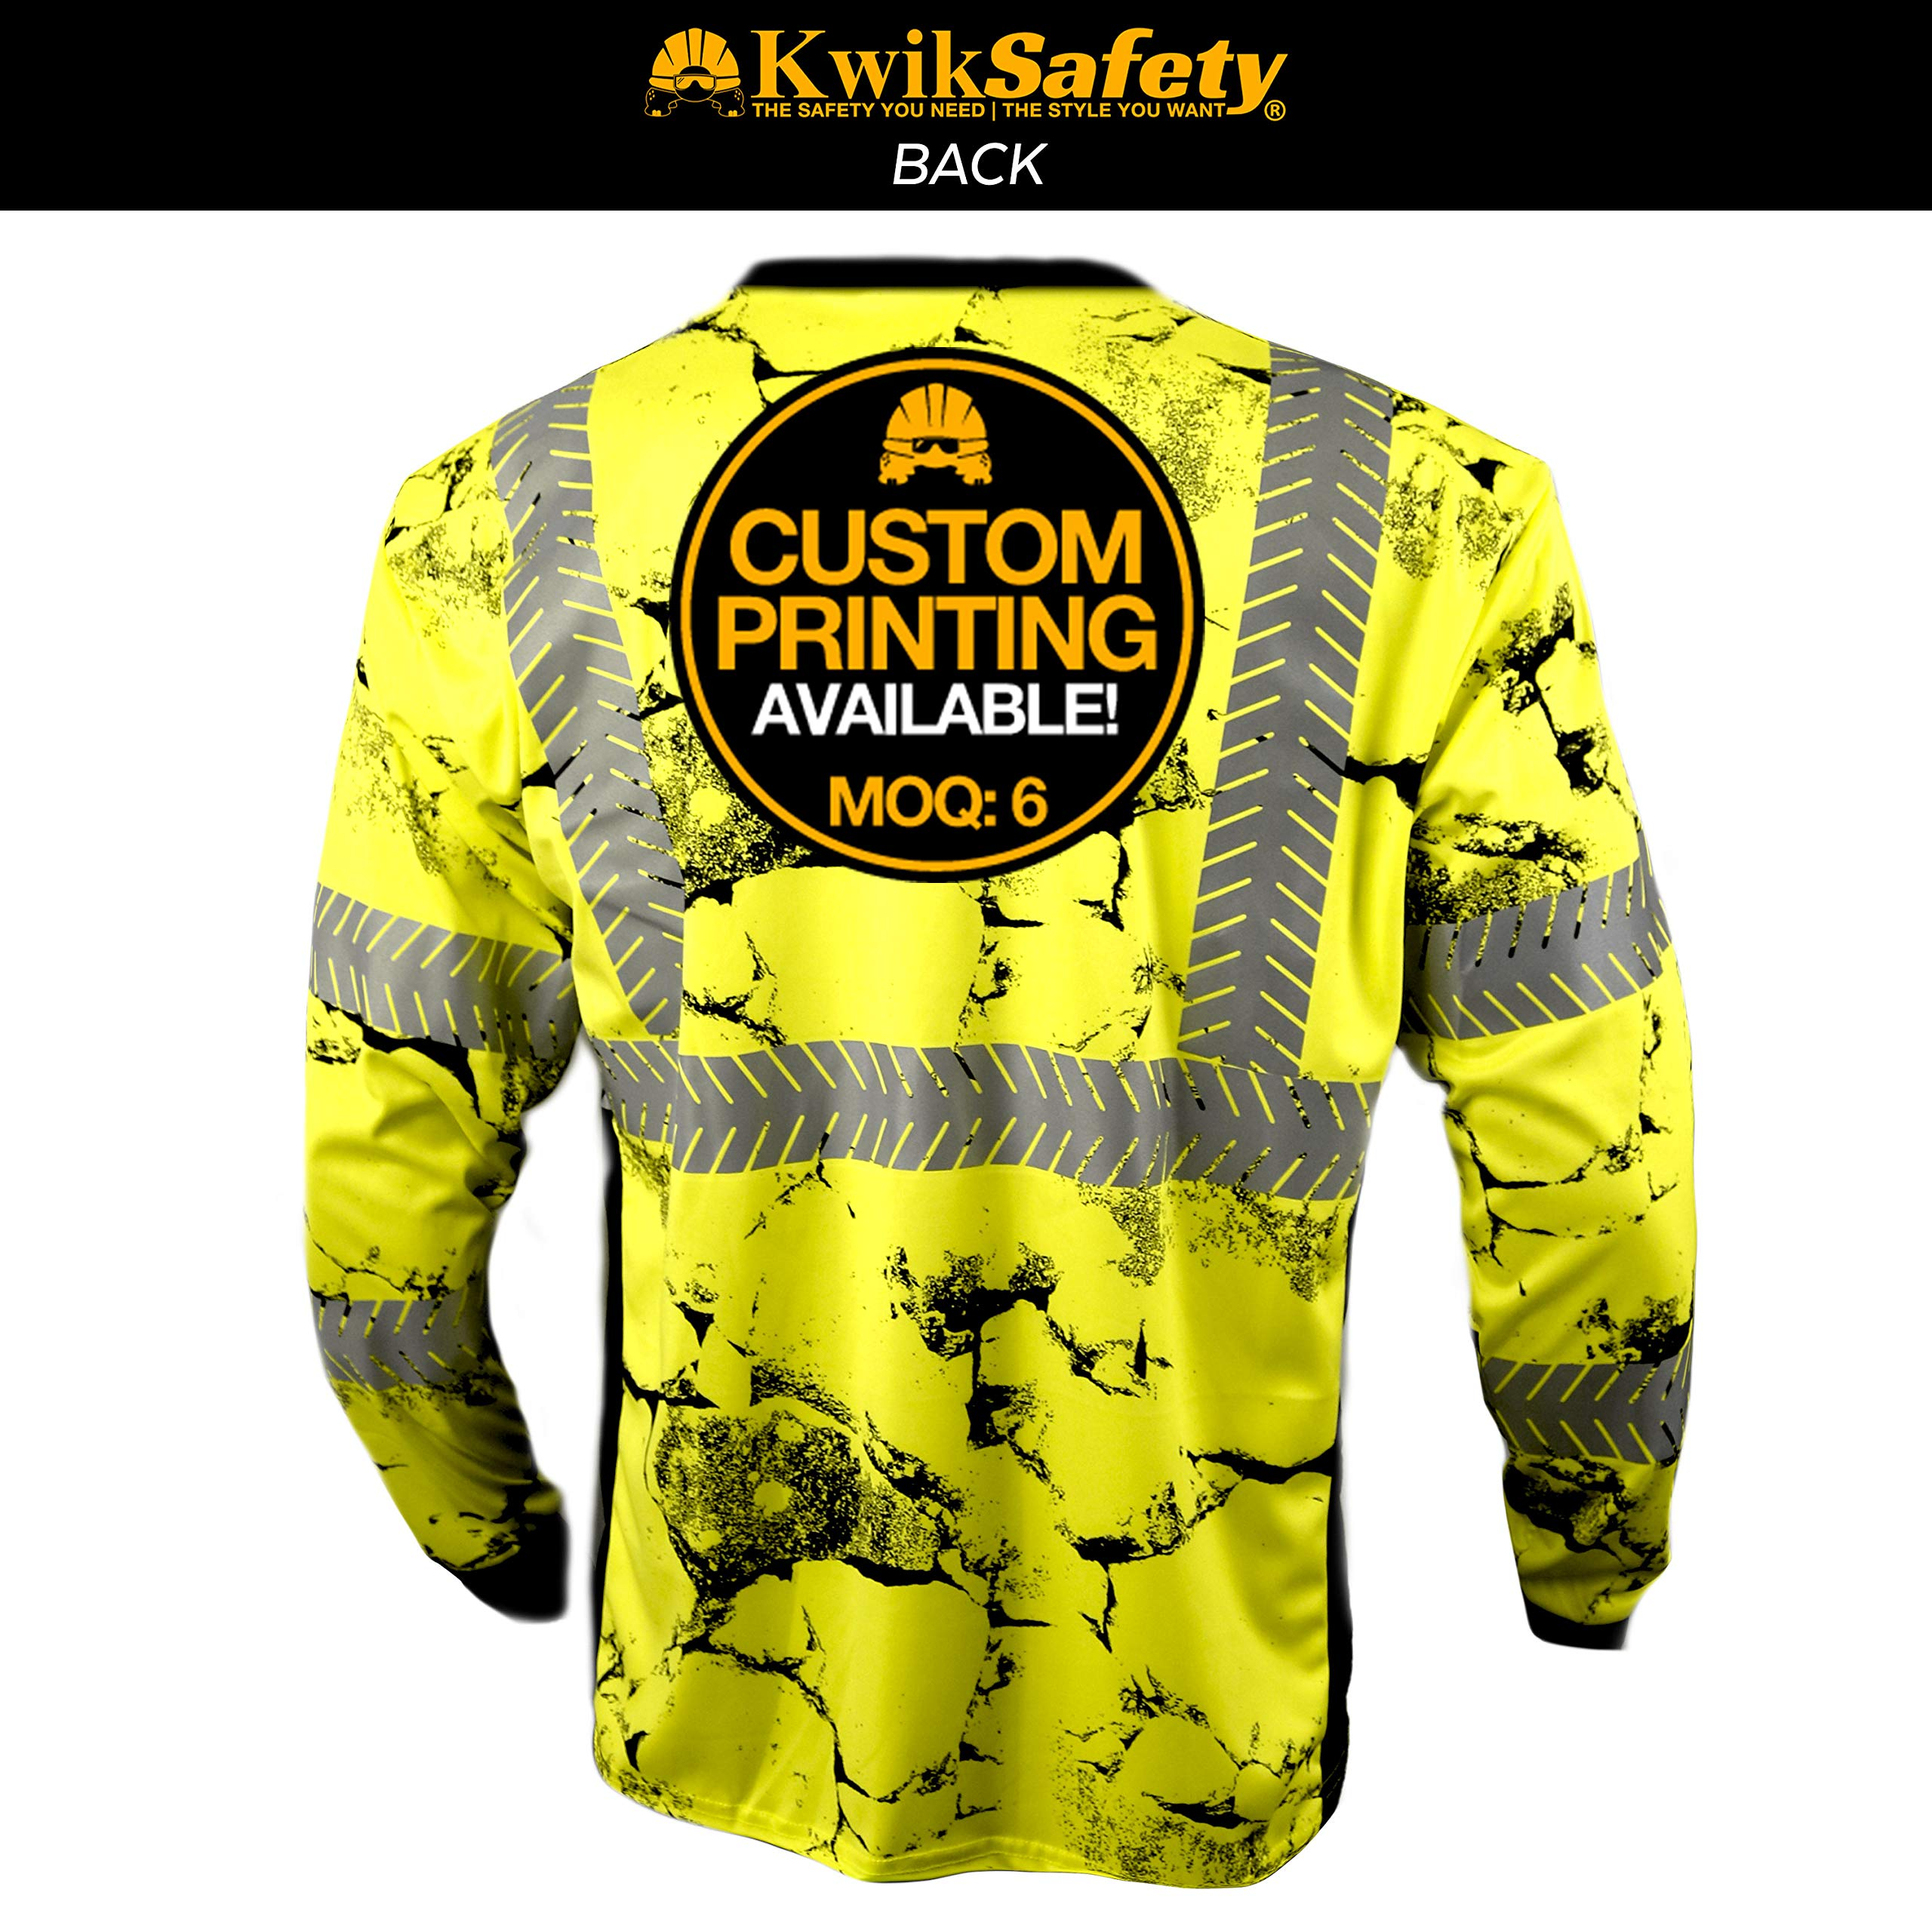 KwikSafety (Charlotte, NC) UNCLE WILLY'S WALL (Chest Pocket) Class 3 ANSI High Visibility Safety Shirt Fishbone Reflective Tape Construction Hi Vis Clothing Men Long Sleeve Camo Yellow Black 2XL by KwikSafety (Image #3)